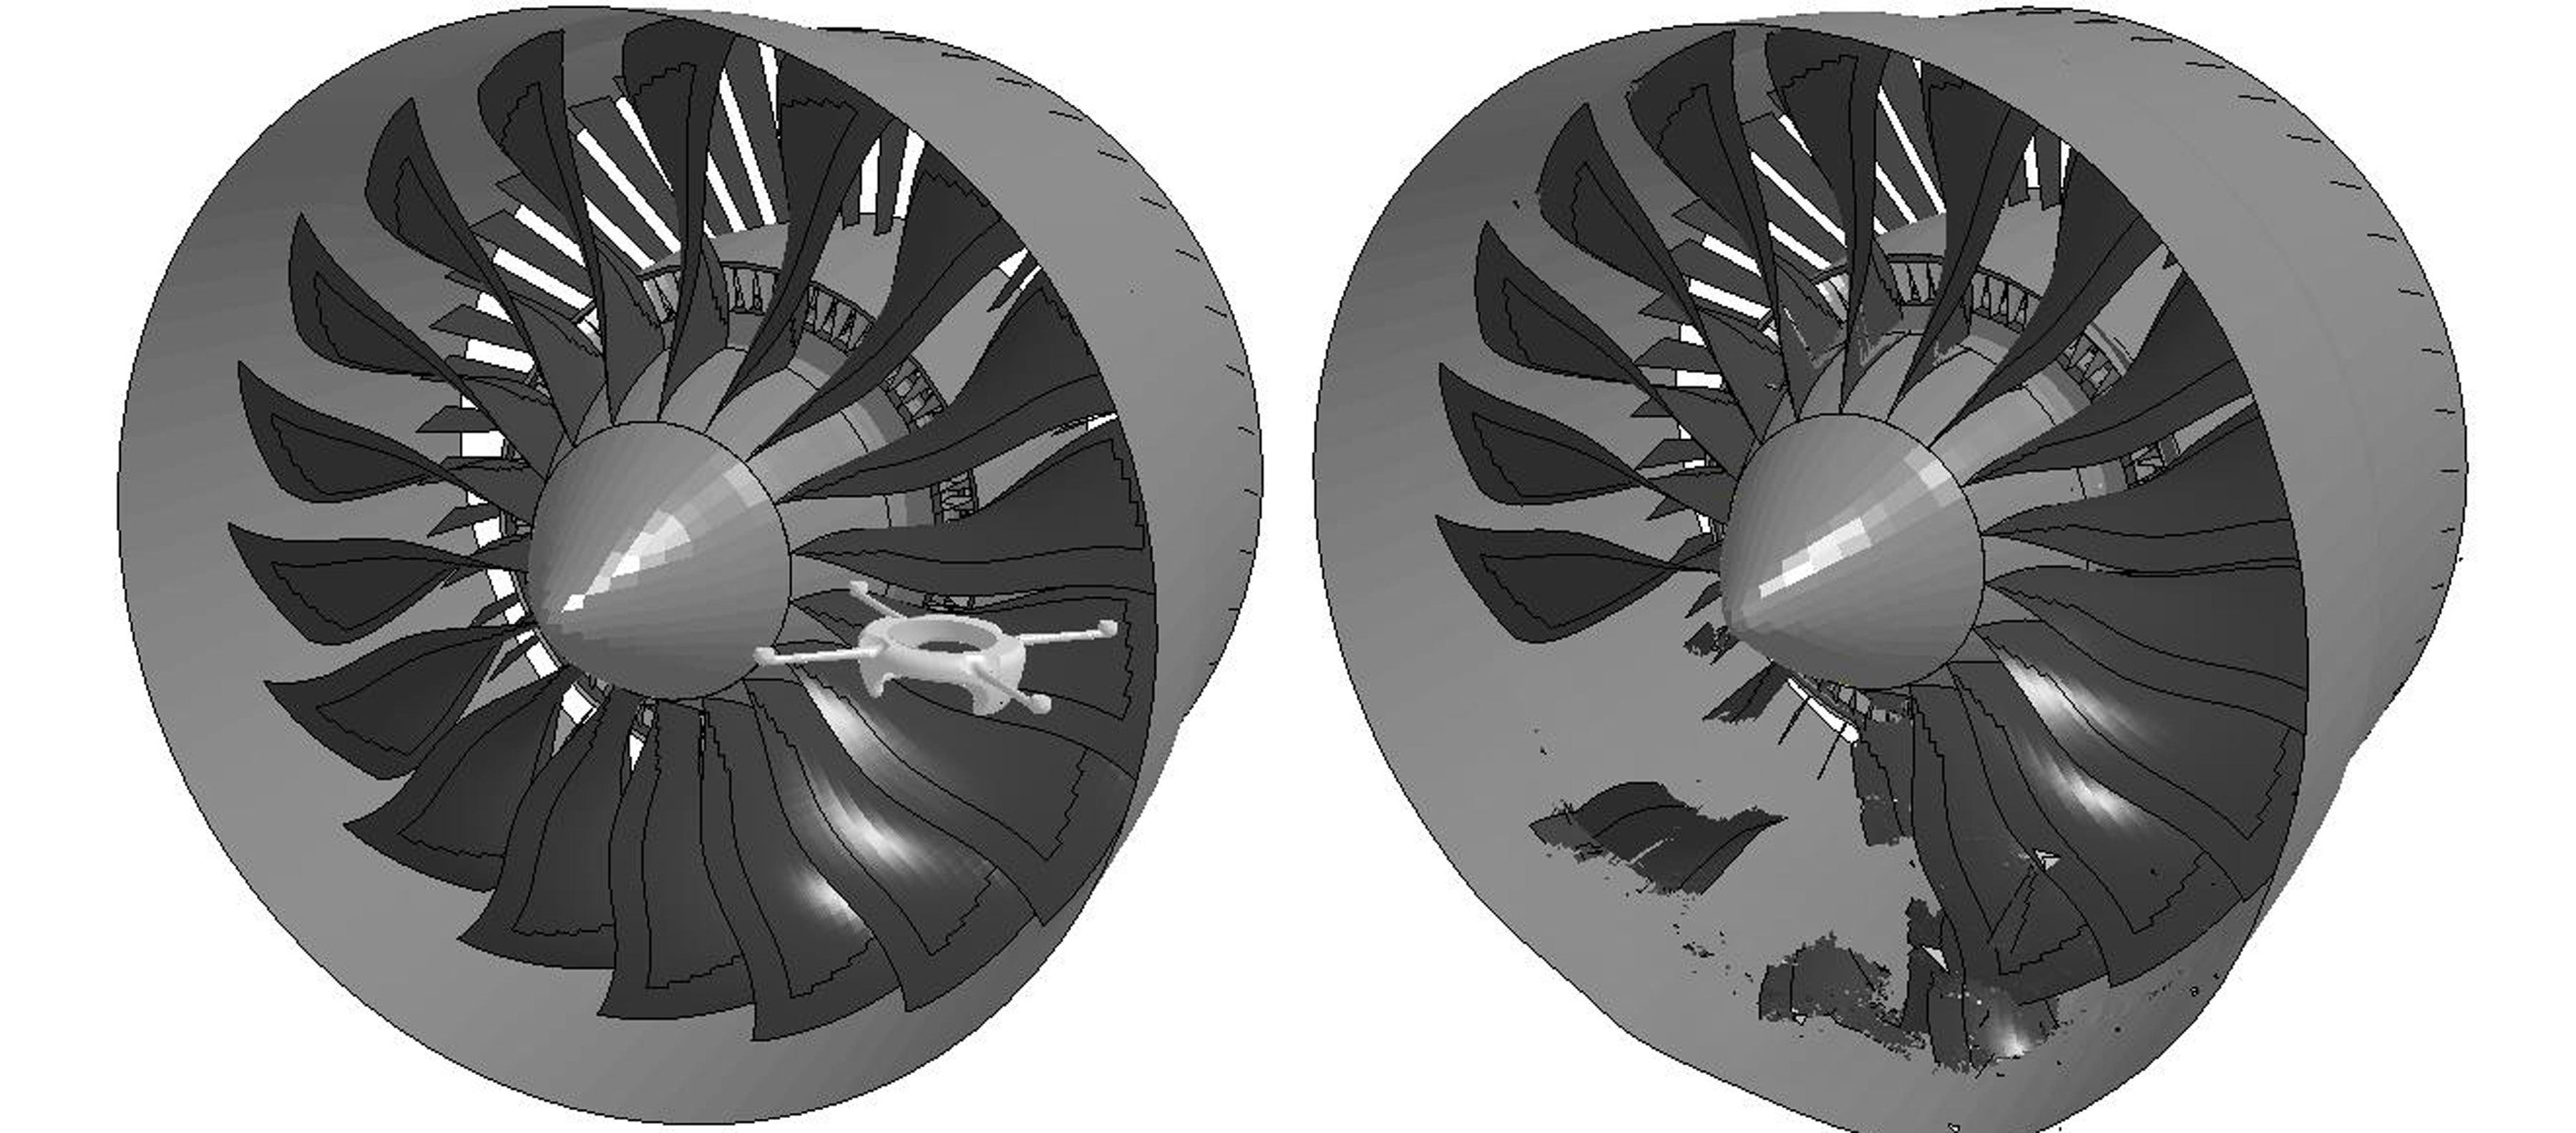 CAD image of jet engine struck by done